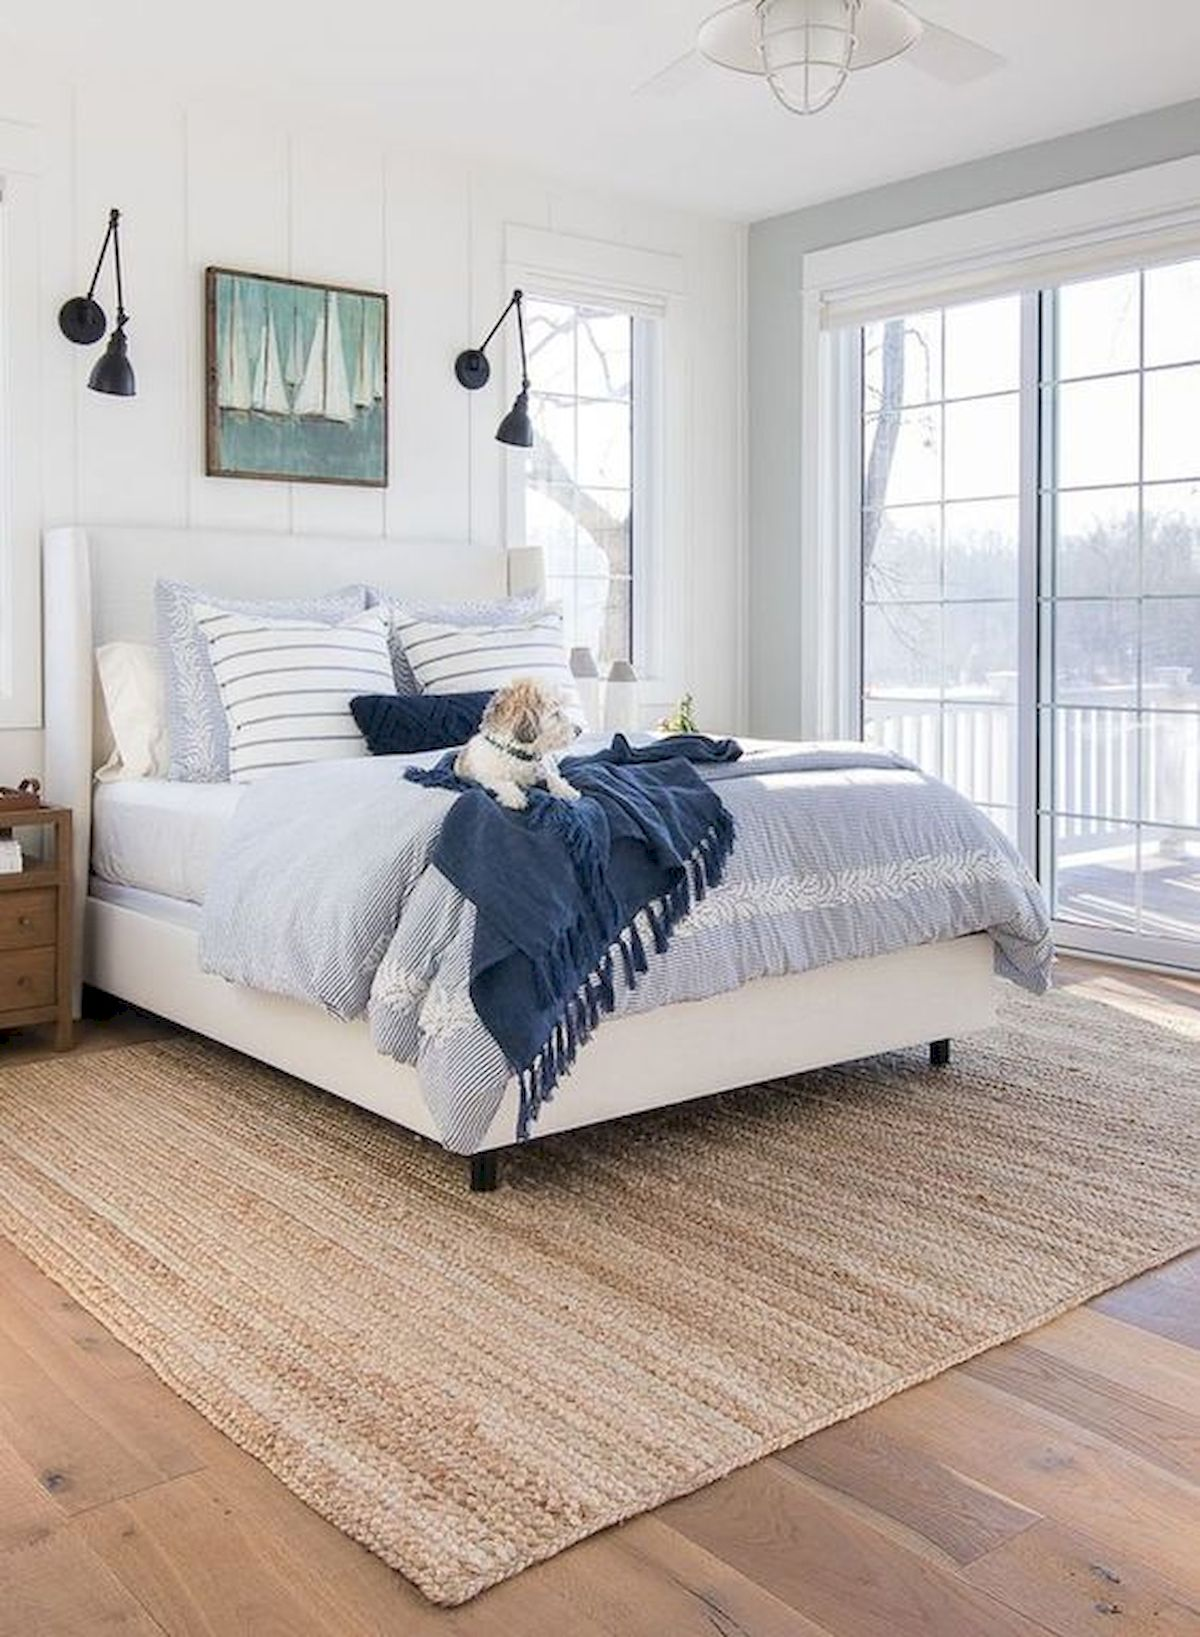 44 Awesome White Master Bedroom Design And Decor Ideas For Any Home Design (3)